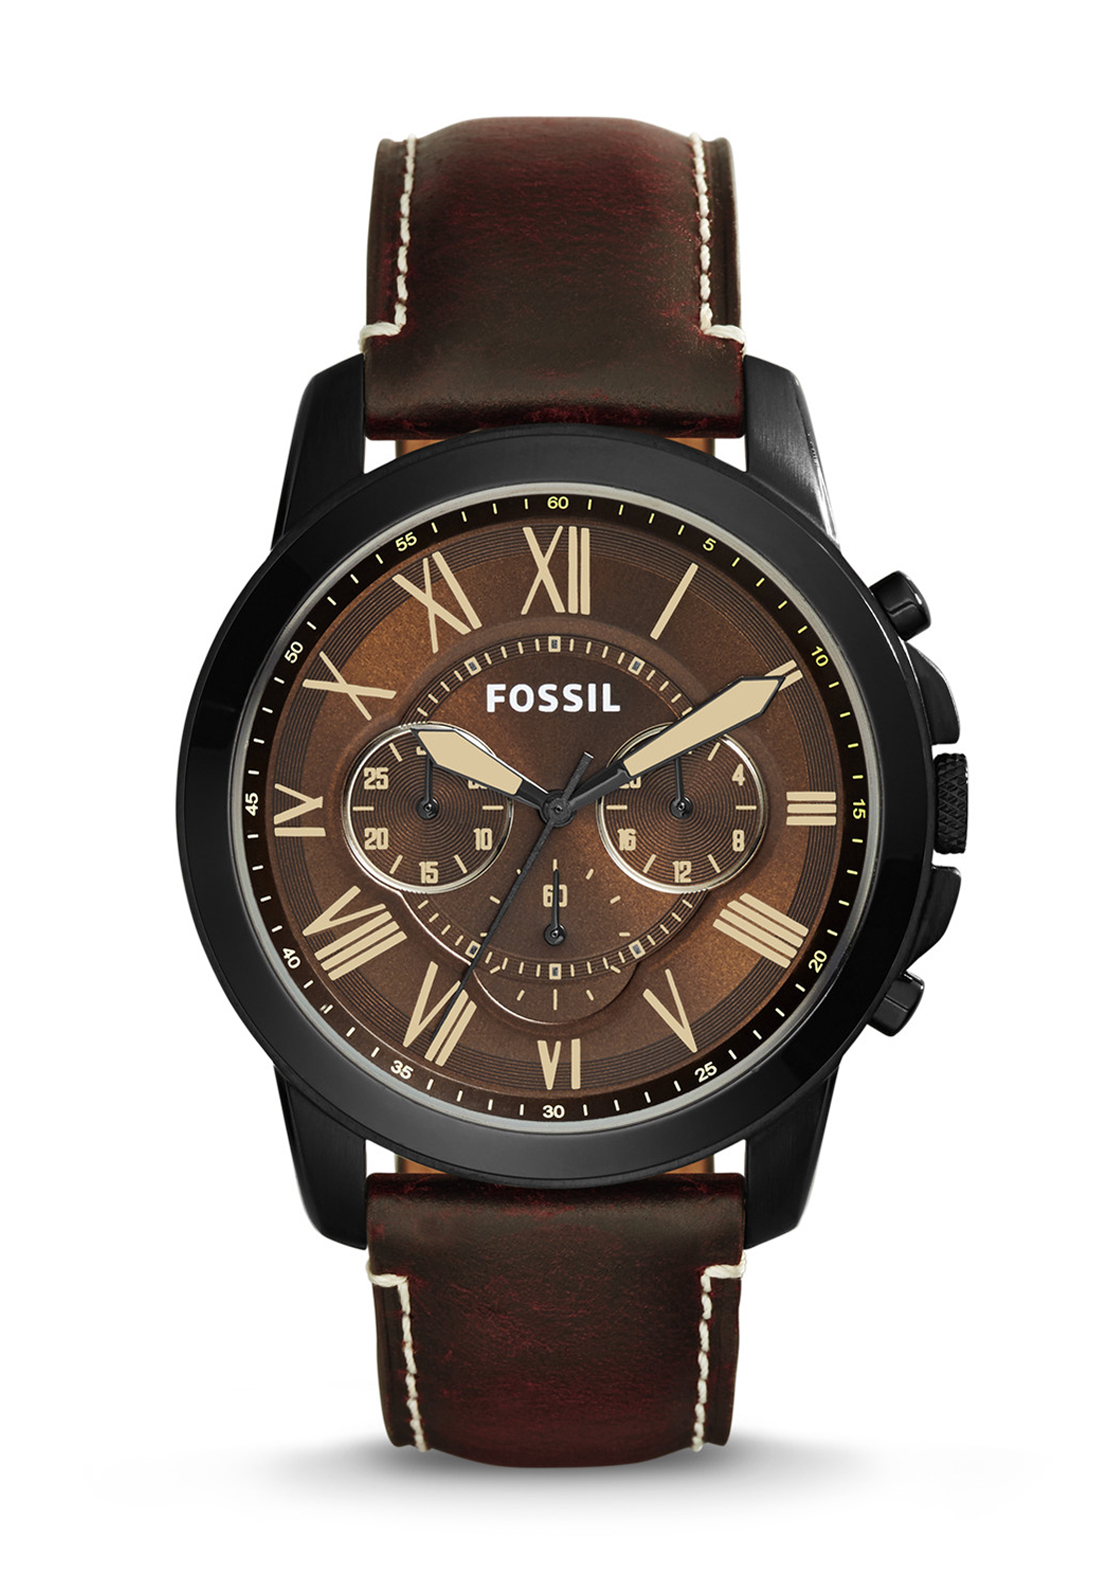 Fossil Mens Chronograph Leather Strap Watch, Bordeaux